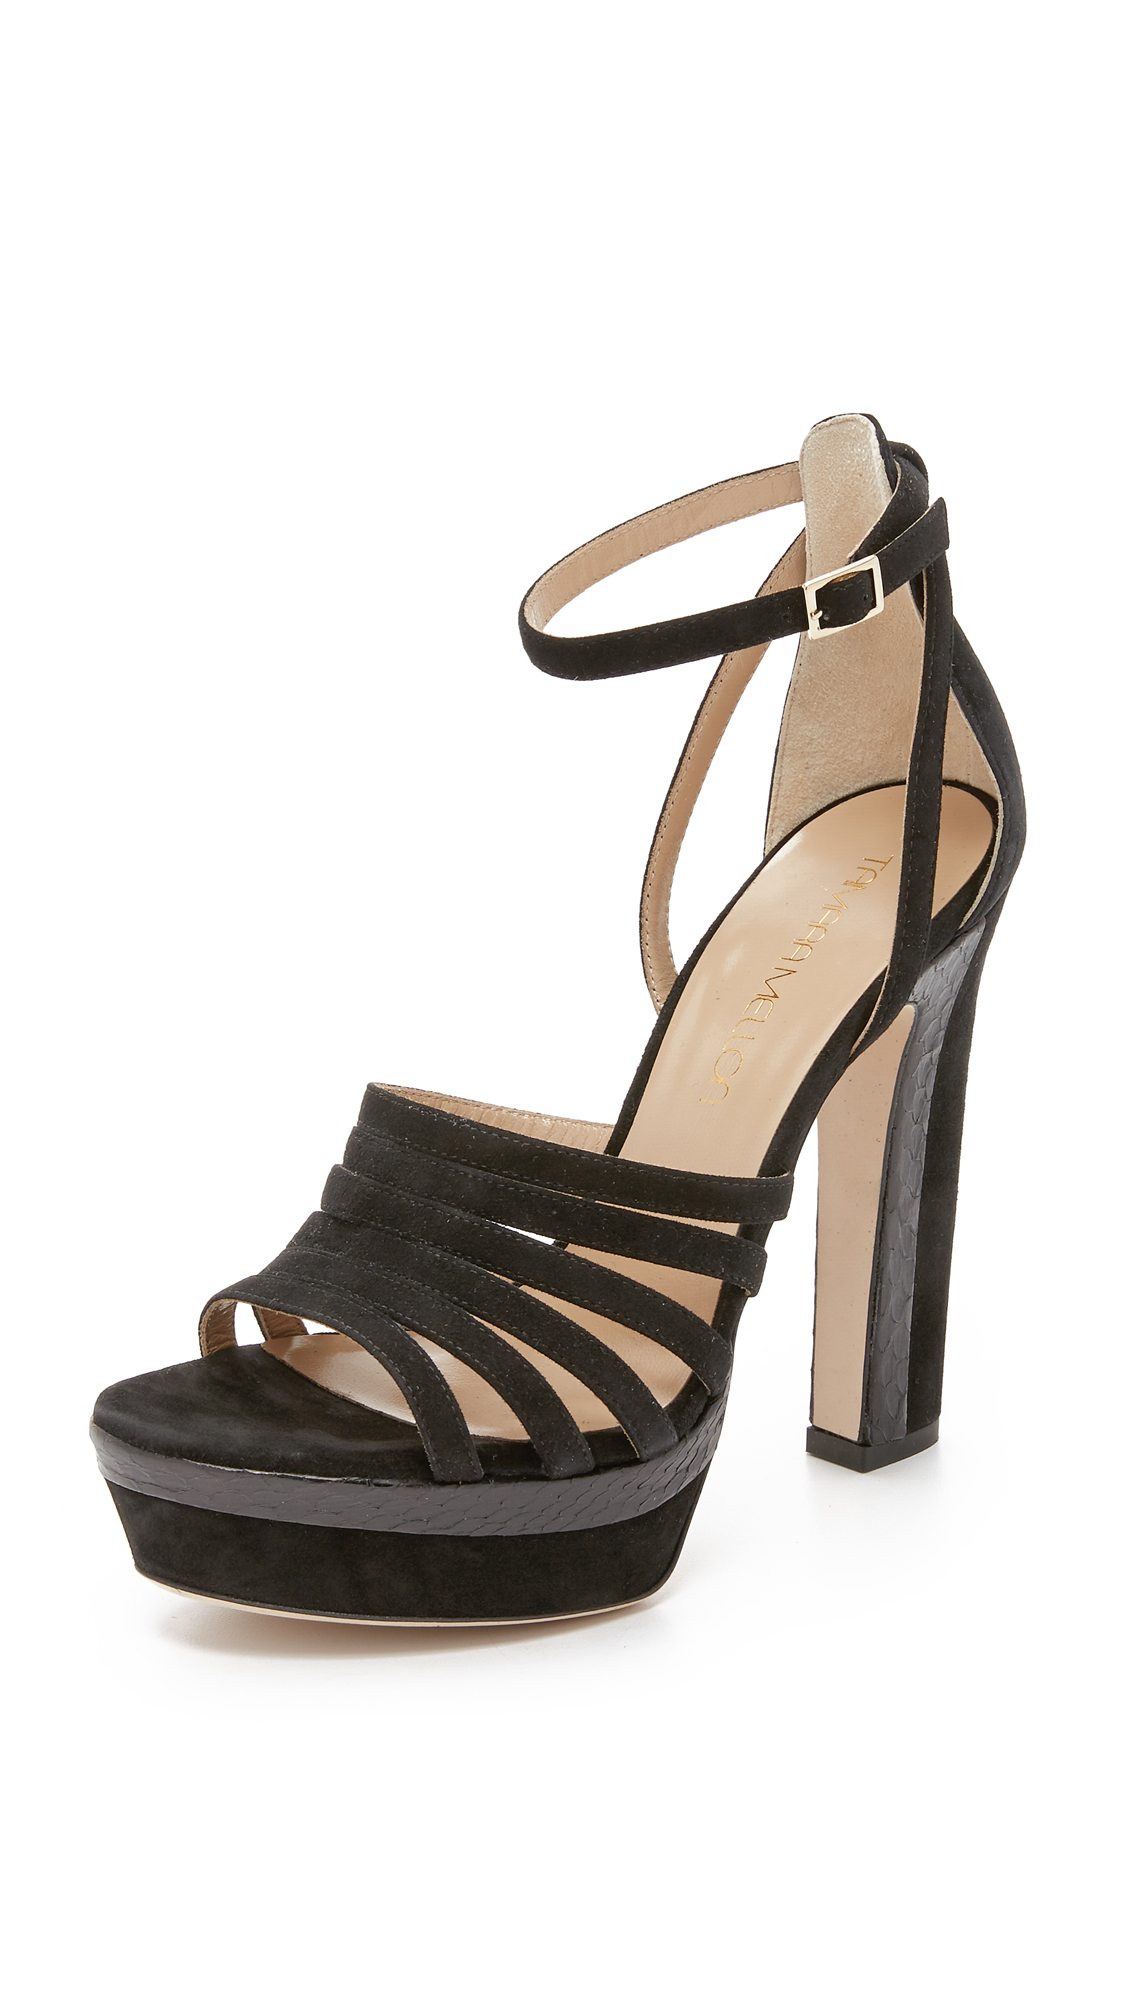 High quality and low prices Tamara Mellon Women Sandals Sandals Tamara Mellon womens Black TAMARA MELLON Womens Sandals